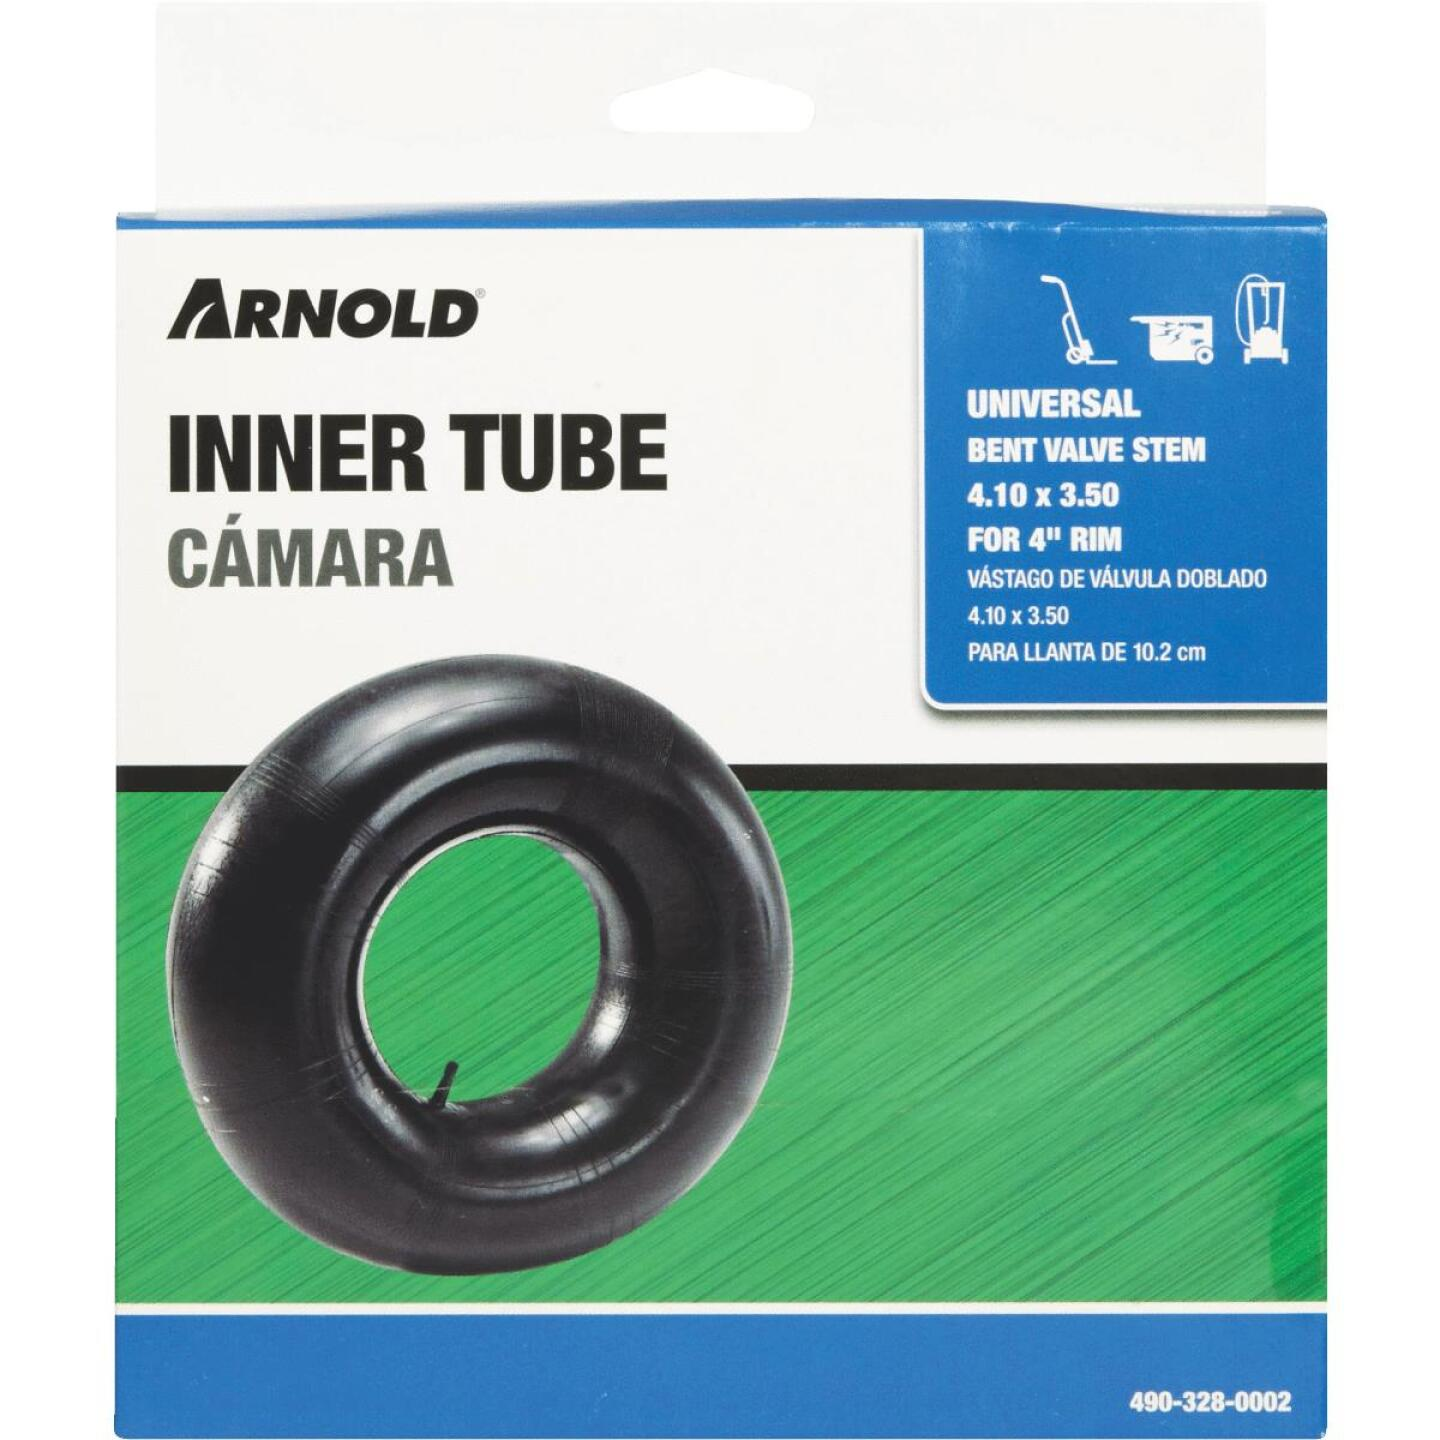 Arnold 410/350 x 4 In. Off-Road Replacement Inner Tube Image 2